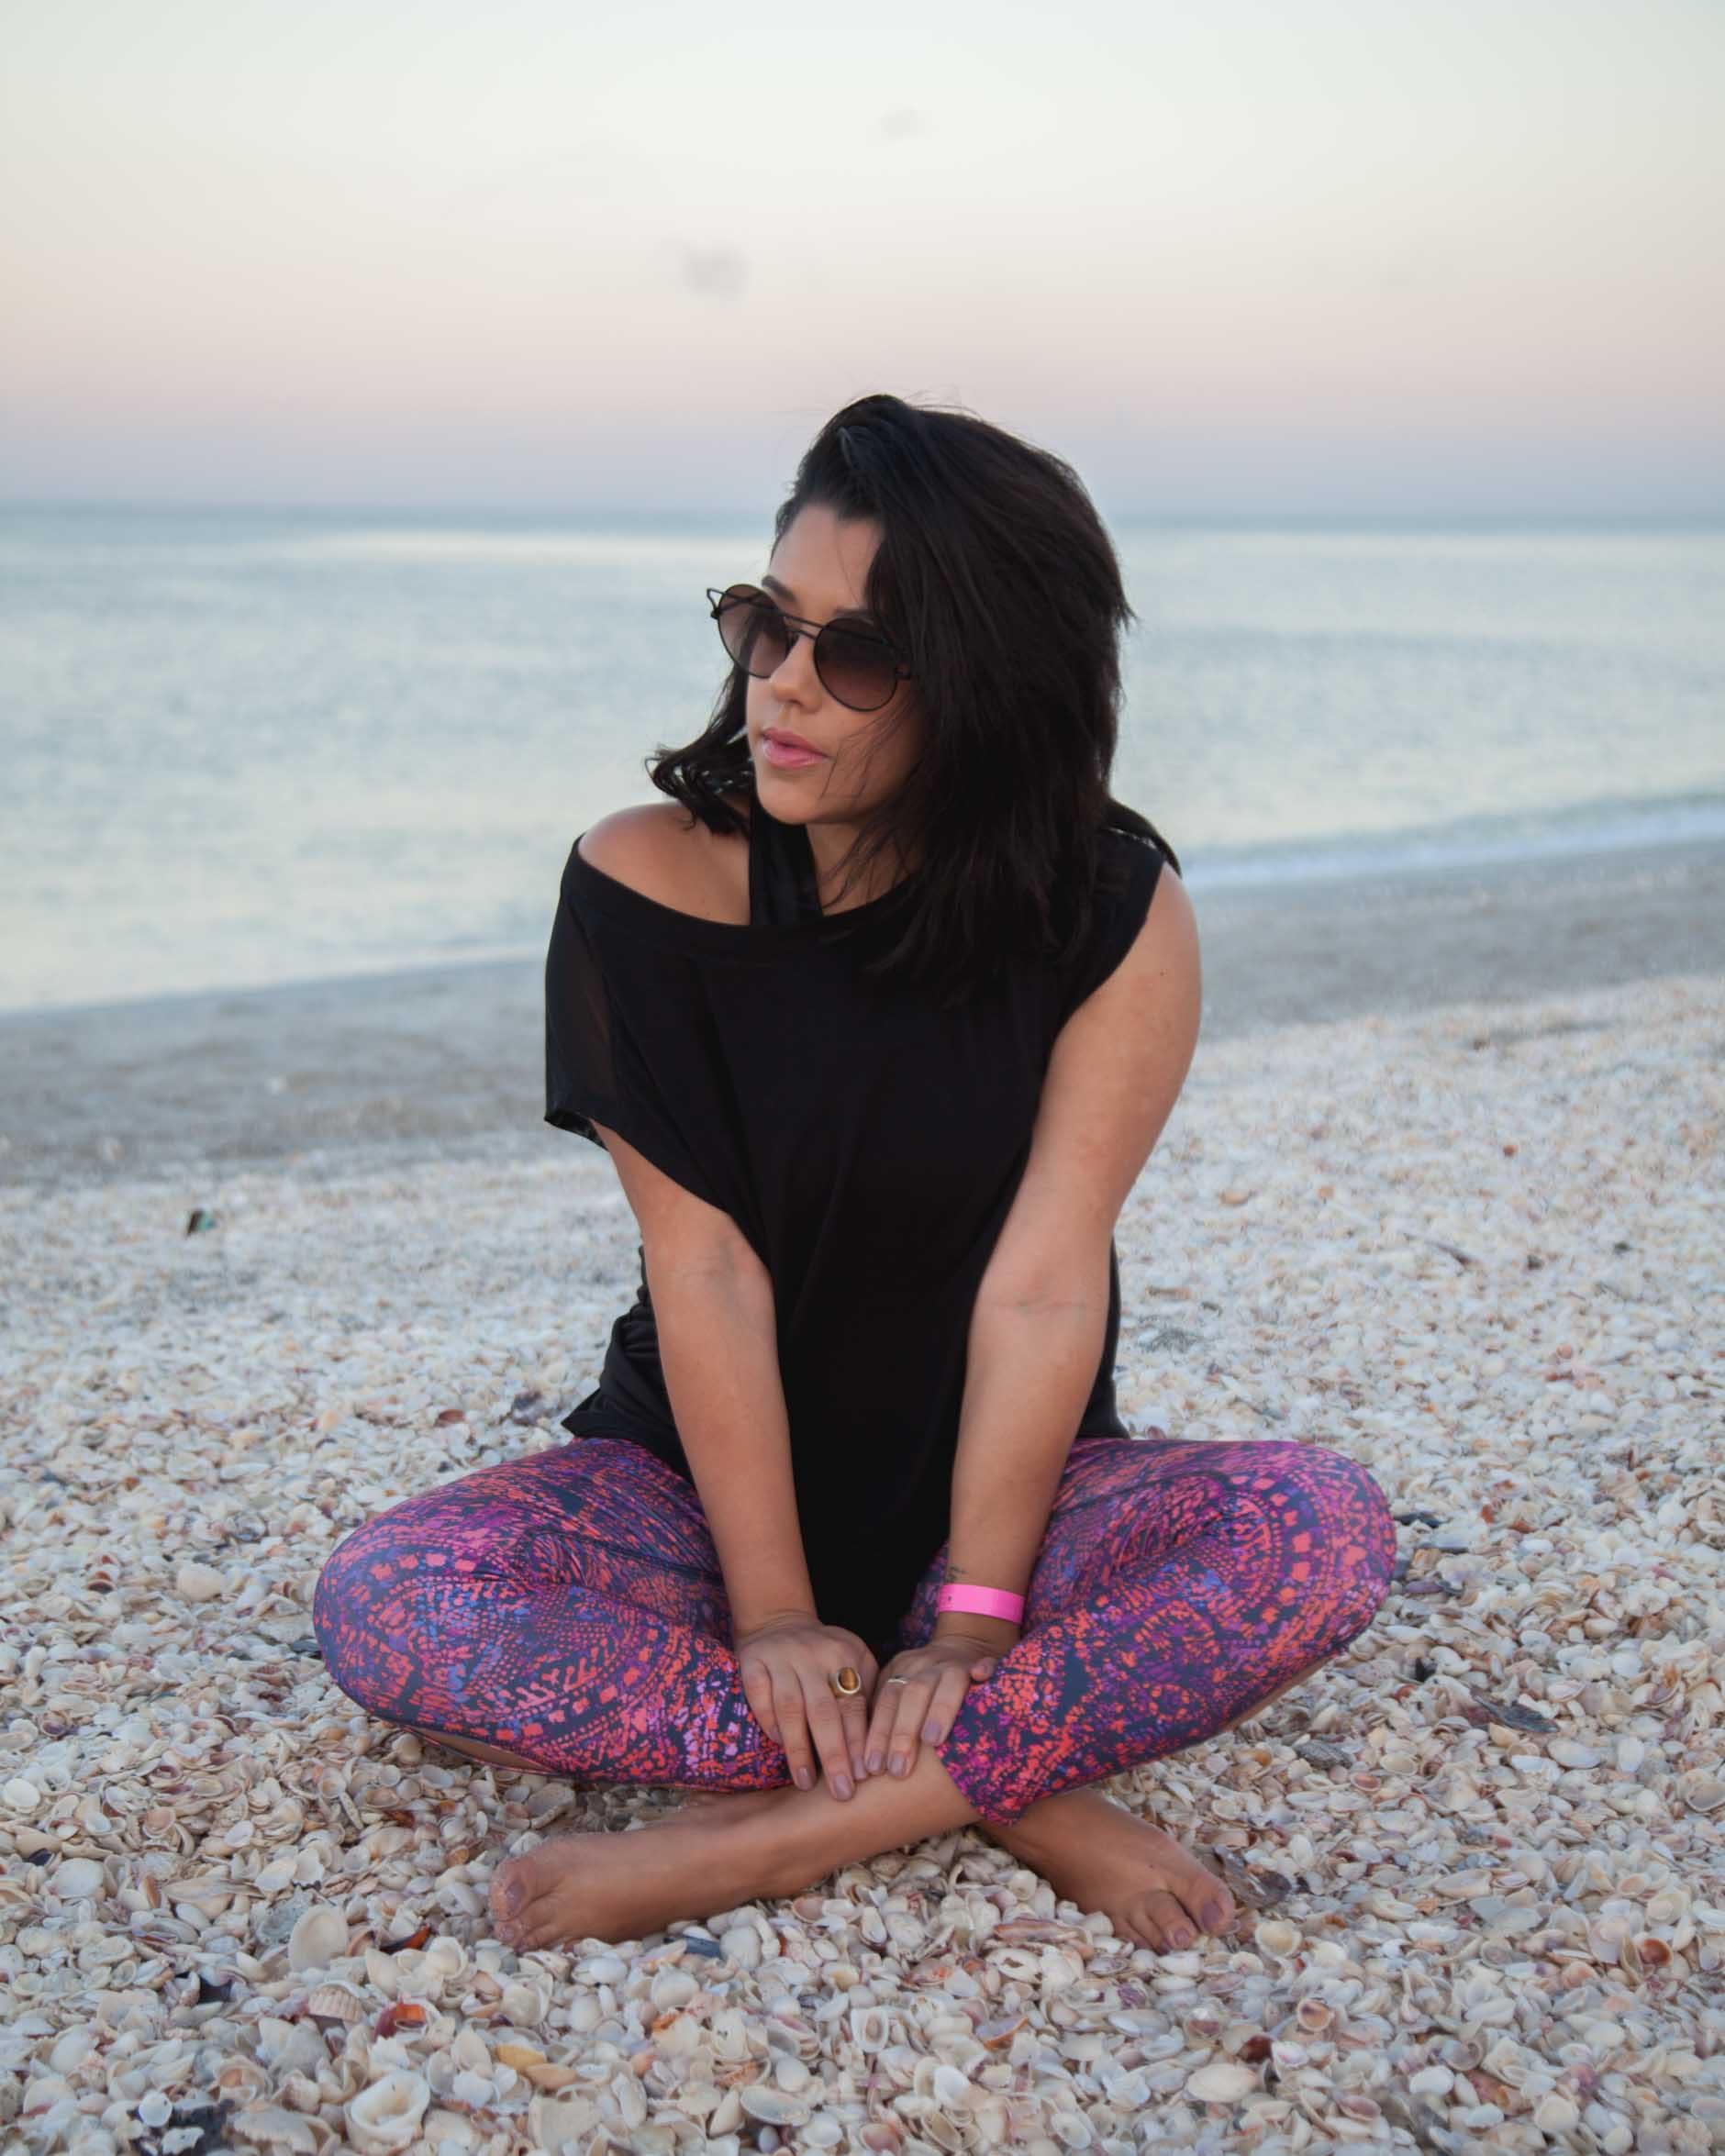 lifestyle blogger naty michele wearing printed jockey leggings on the beach